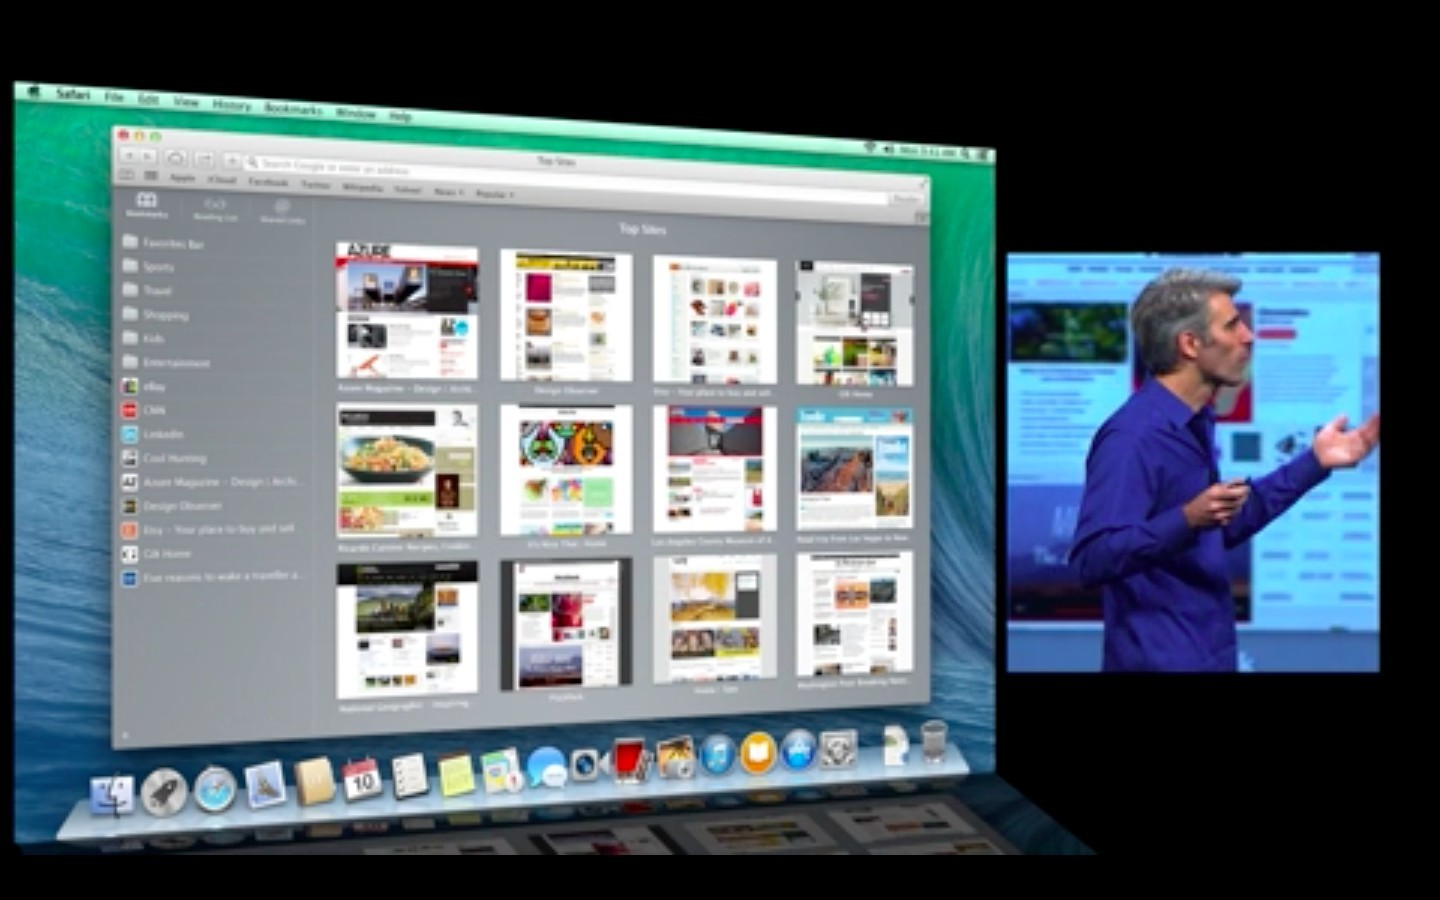 Mac OS X 10.9: Apple verkauft Mavericks ab Herbst 2013 - Neue Safari-Version (Apple/Screenshot: Golem.de)